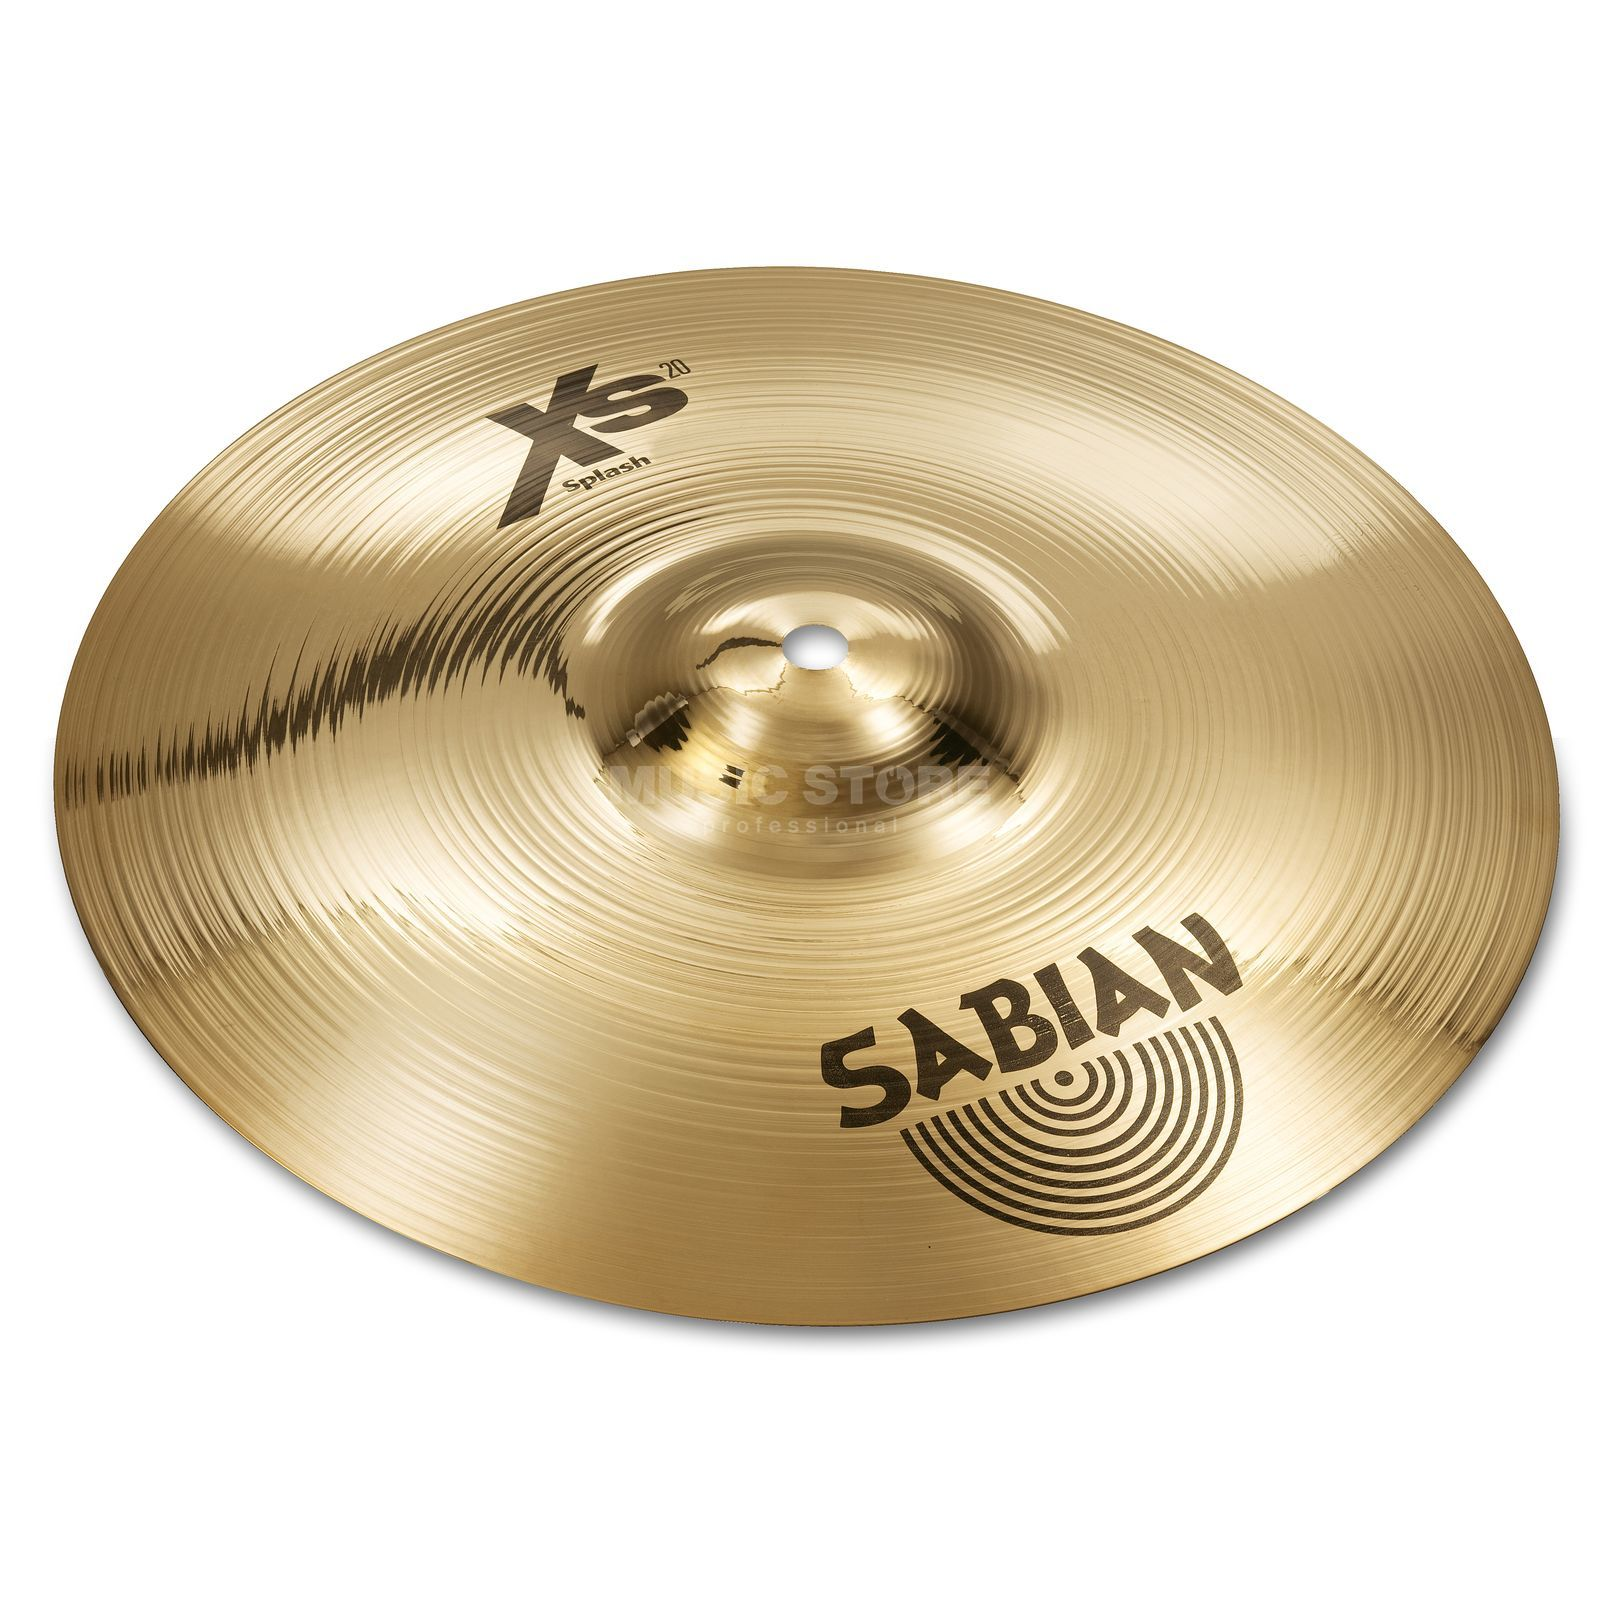 "Sabian XS20 Splash 10"", Brilliant Finish Zdjęcie produktu"